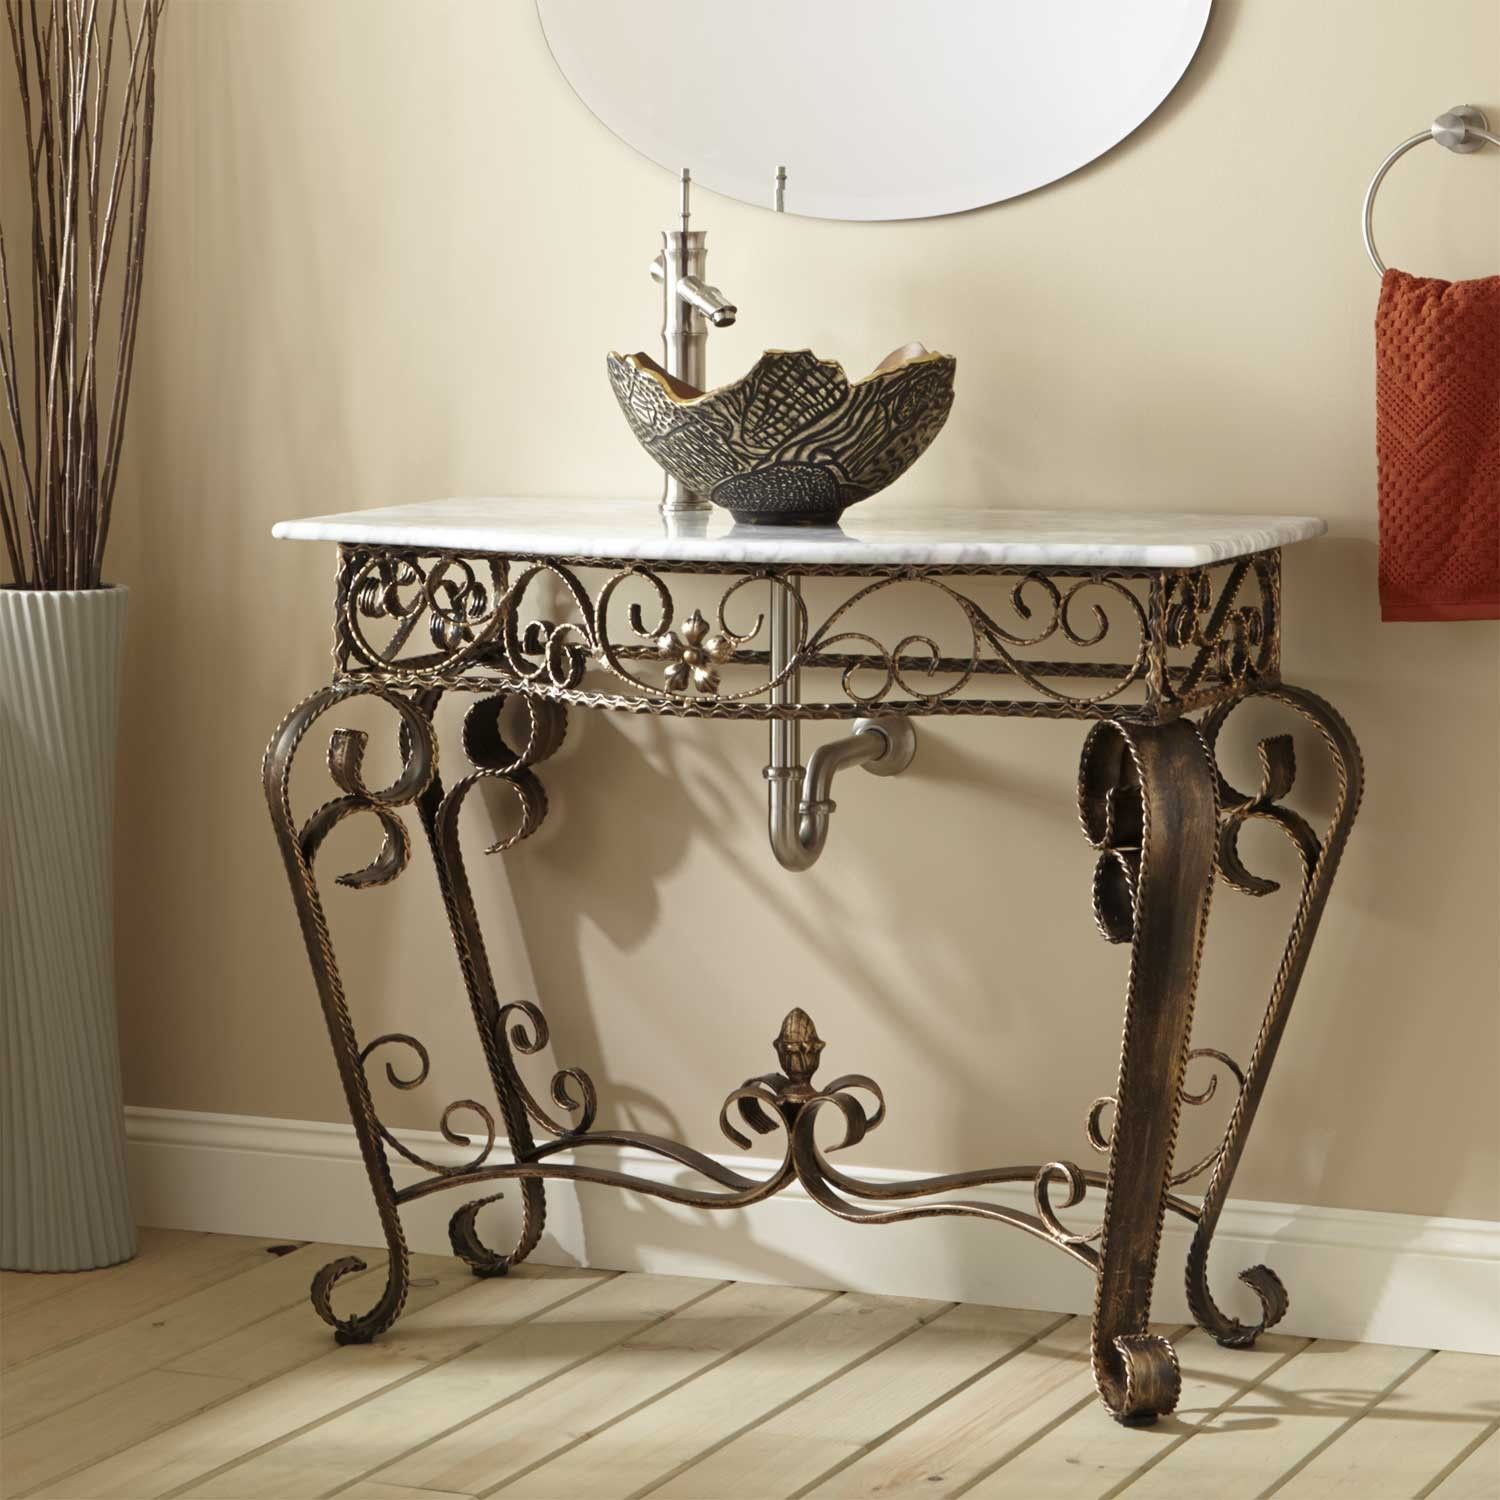 Model Wrought  Iron Chair Or Bench With Soft Decorative Cushions Can Dramatically Change Your Bedroom Or Master Bathroom, Creating Modern Interior Design Or Home Staging And Making Home Interiors Feel More Luxurious And